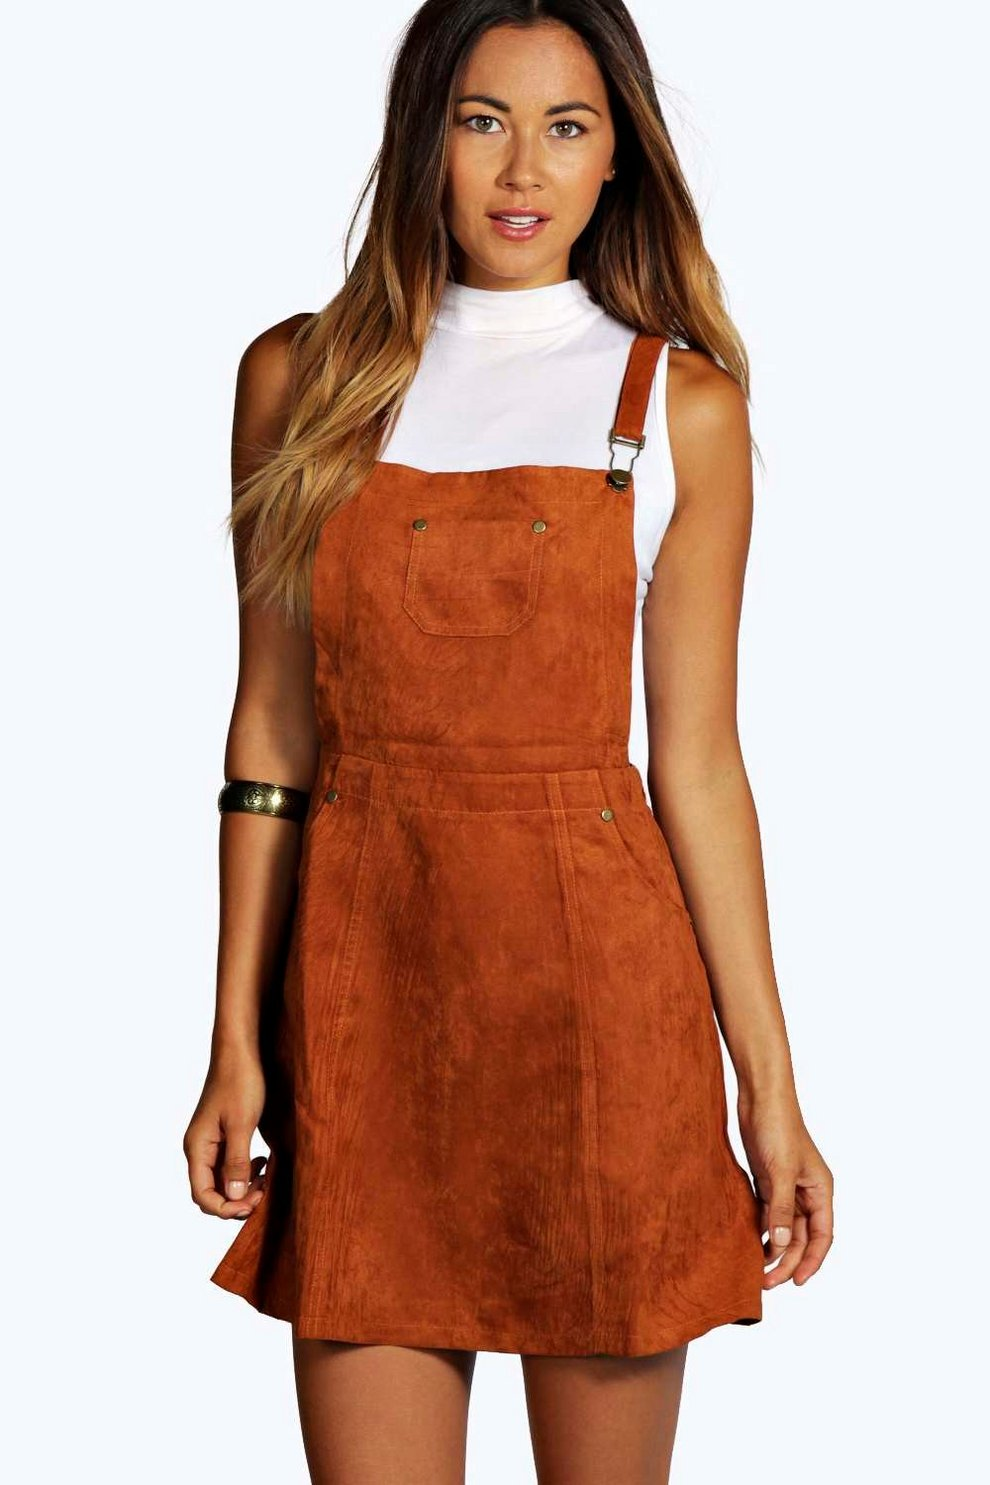 Boohoo Suedette Pinafore Dress Wiki For Sale Top Quality Cheap Price Many Kinds Of Cheap Online IBJ09Nf5N